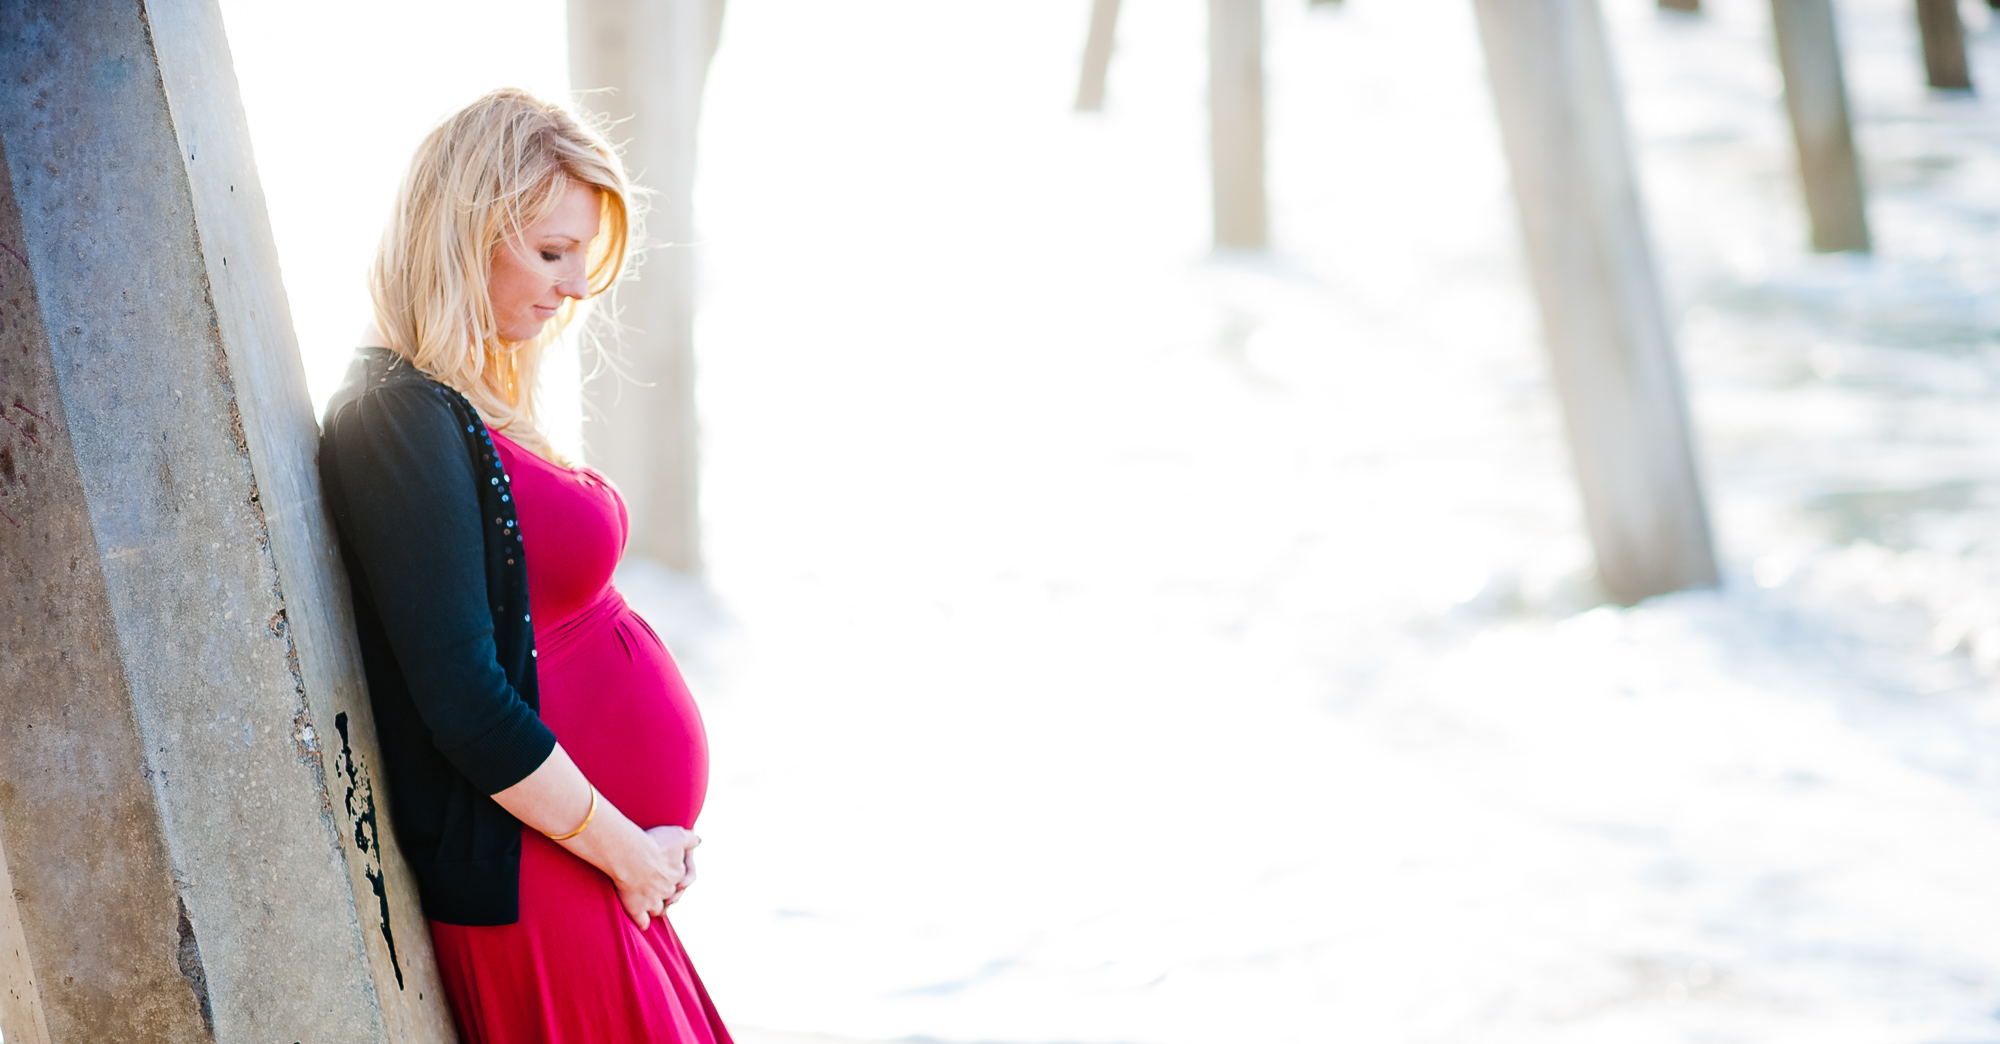 Lindsey's Hermosa Beach Maternity Photo Shoot featured slider image